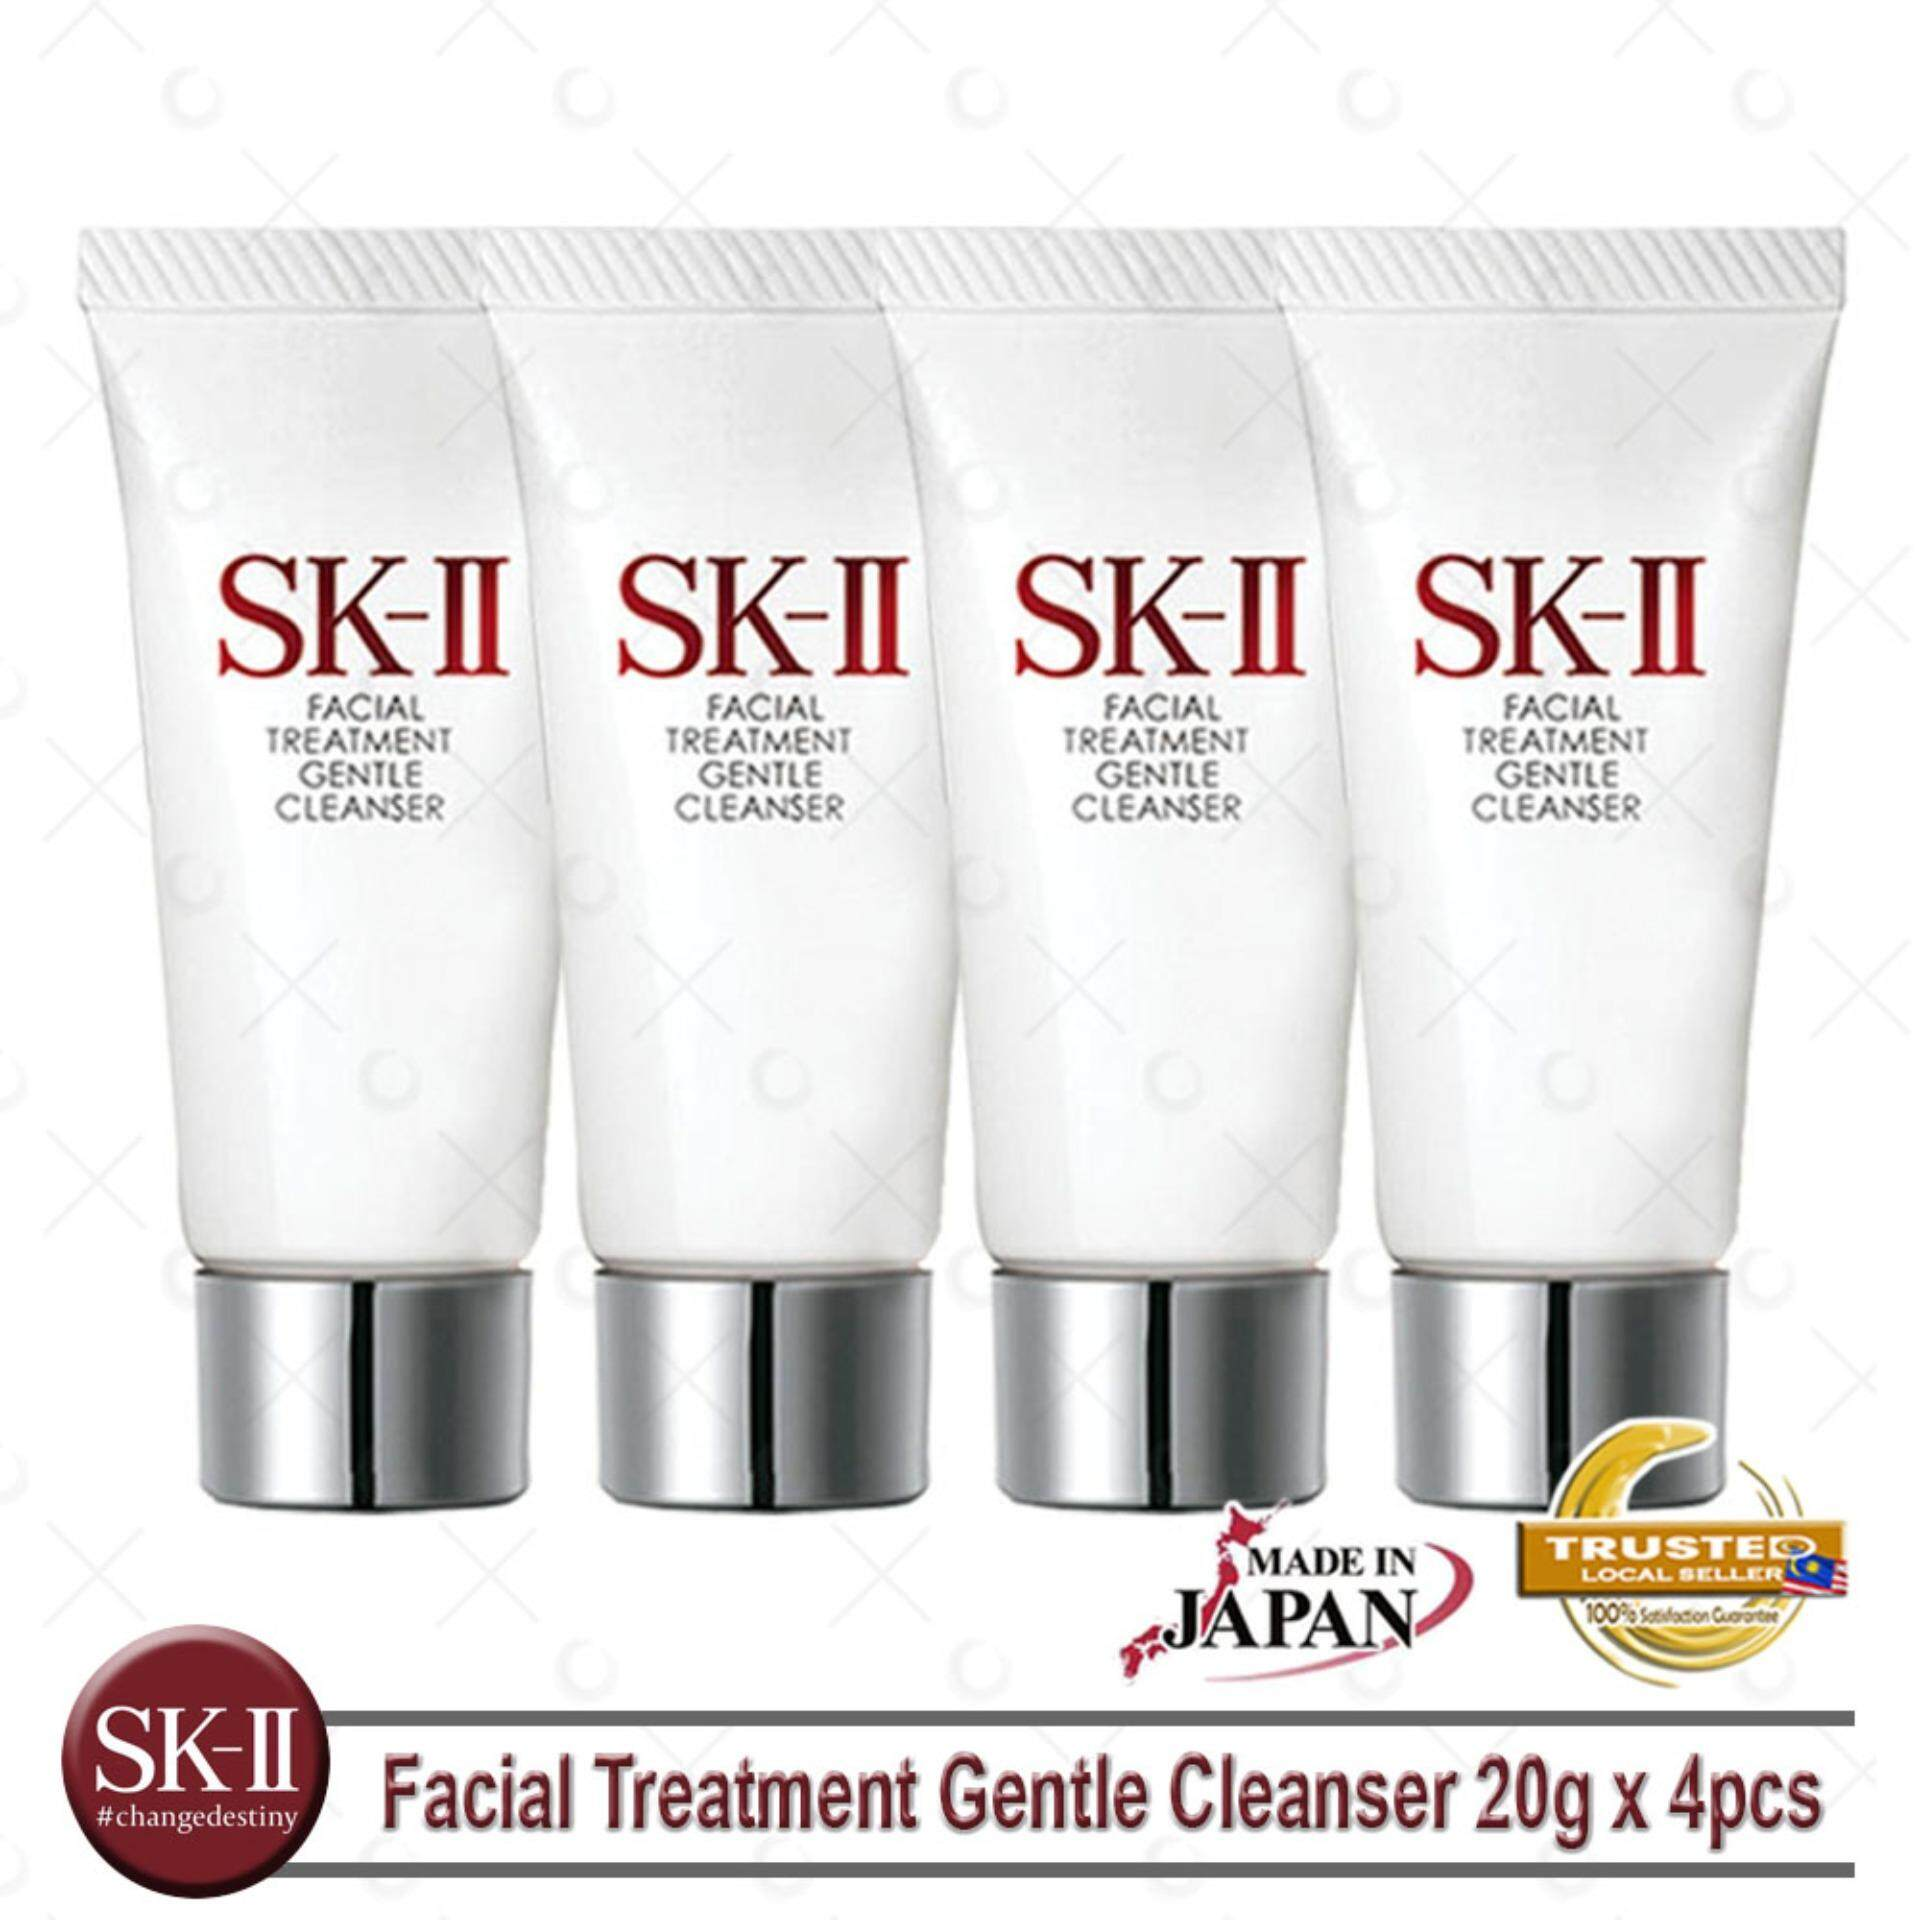 SK-II Facial Treatment Gentle Cleanser 20g x 4